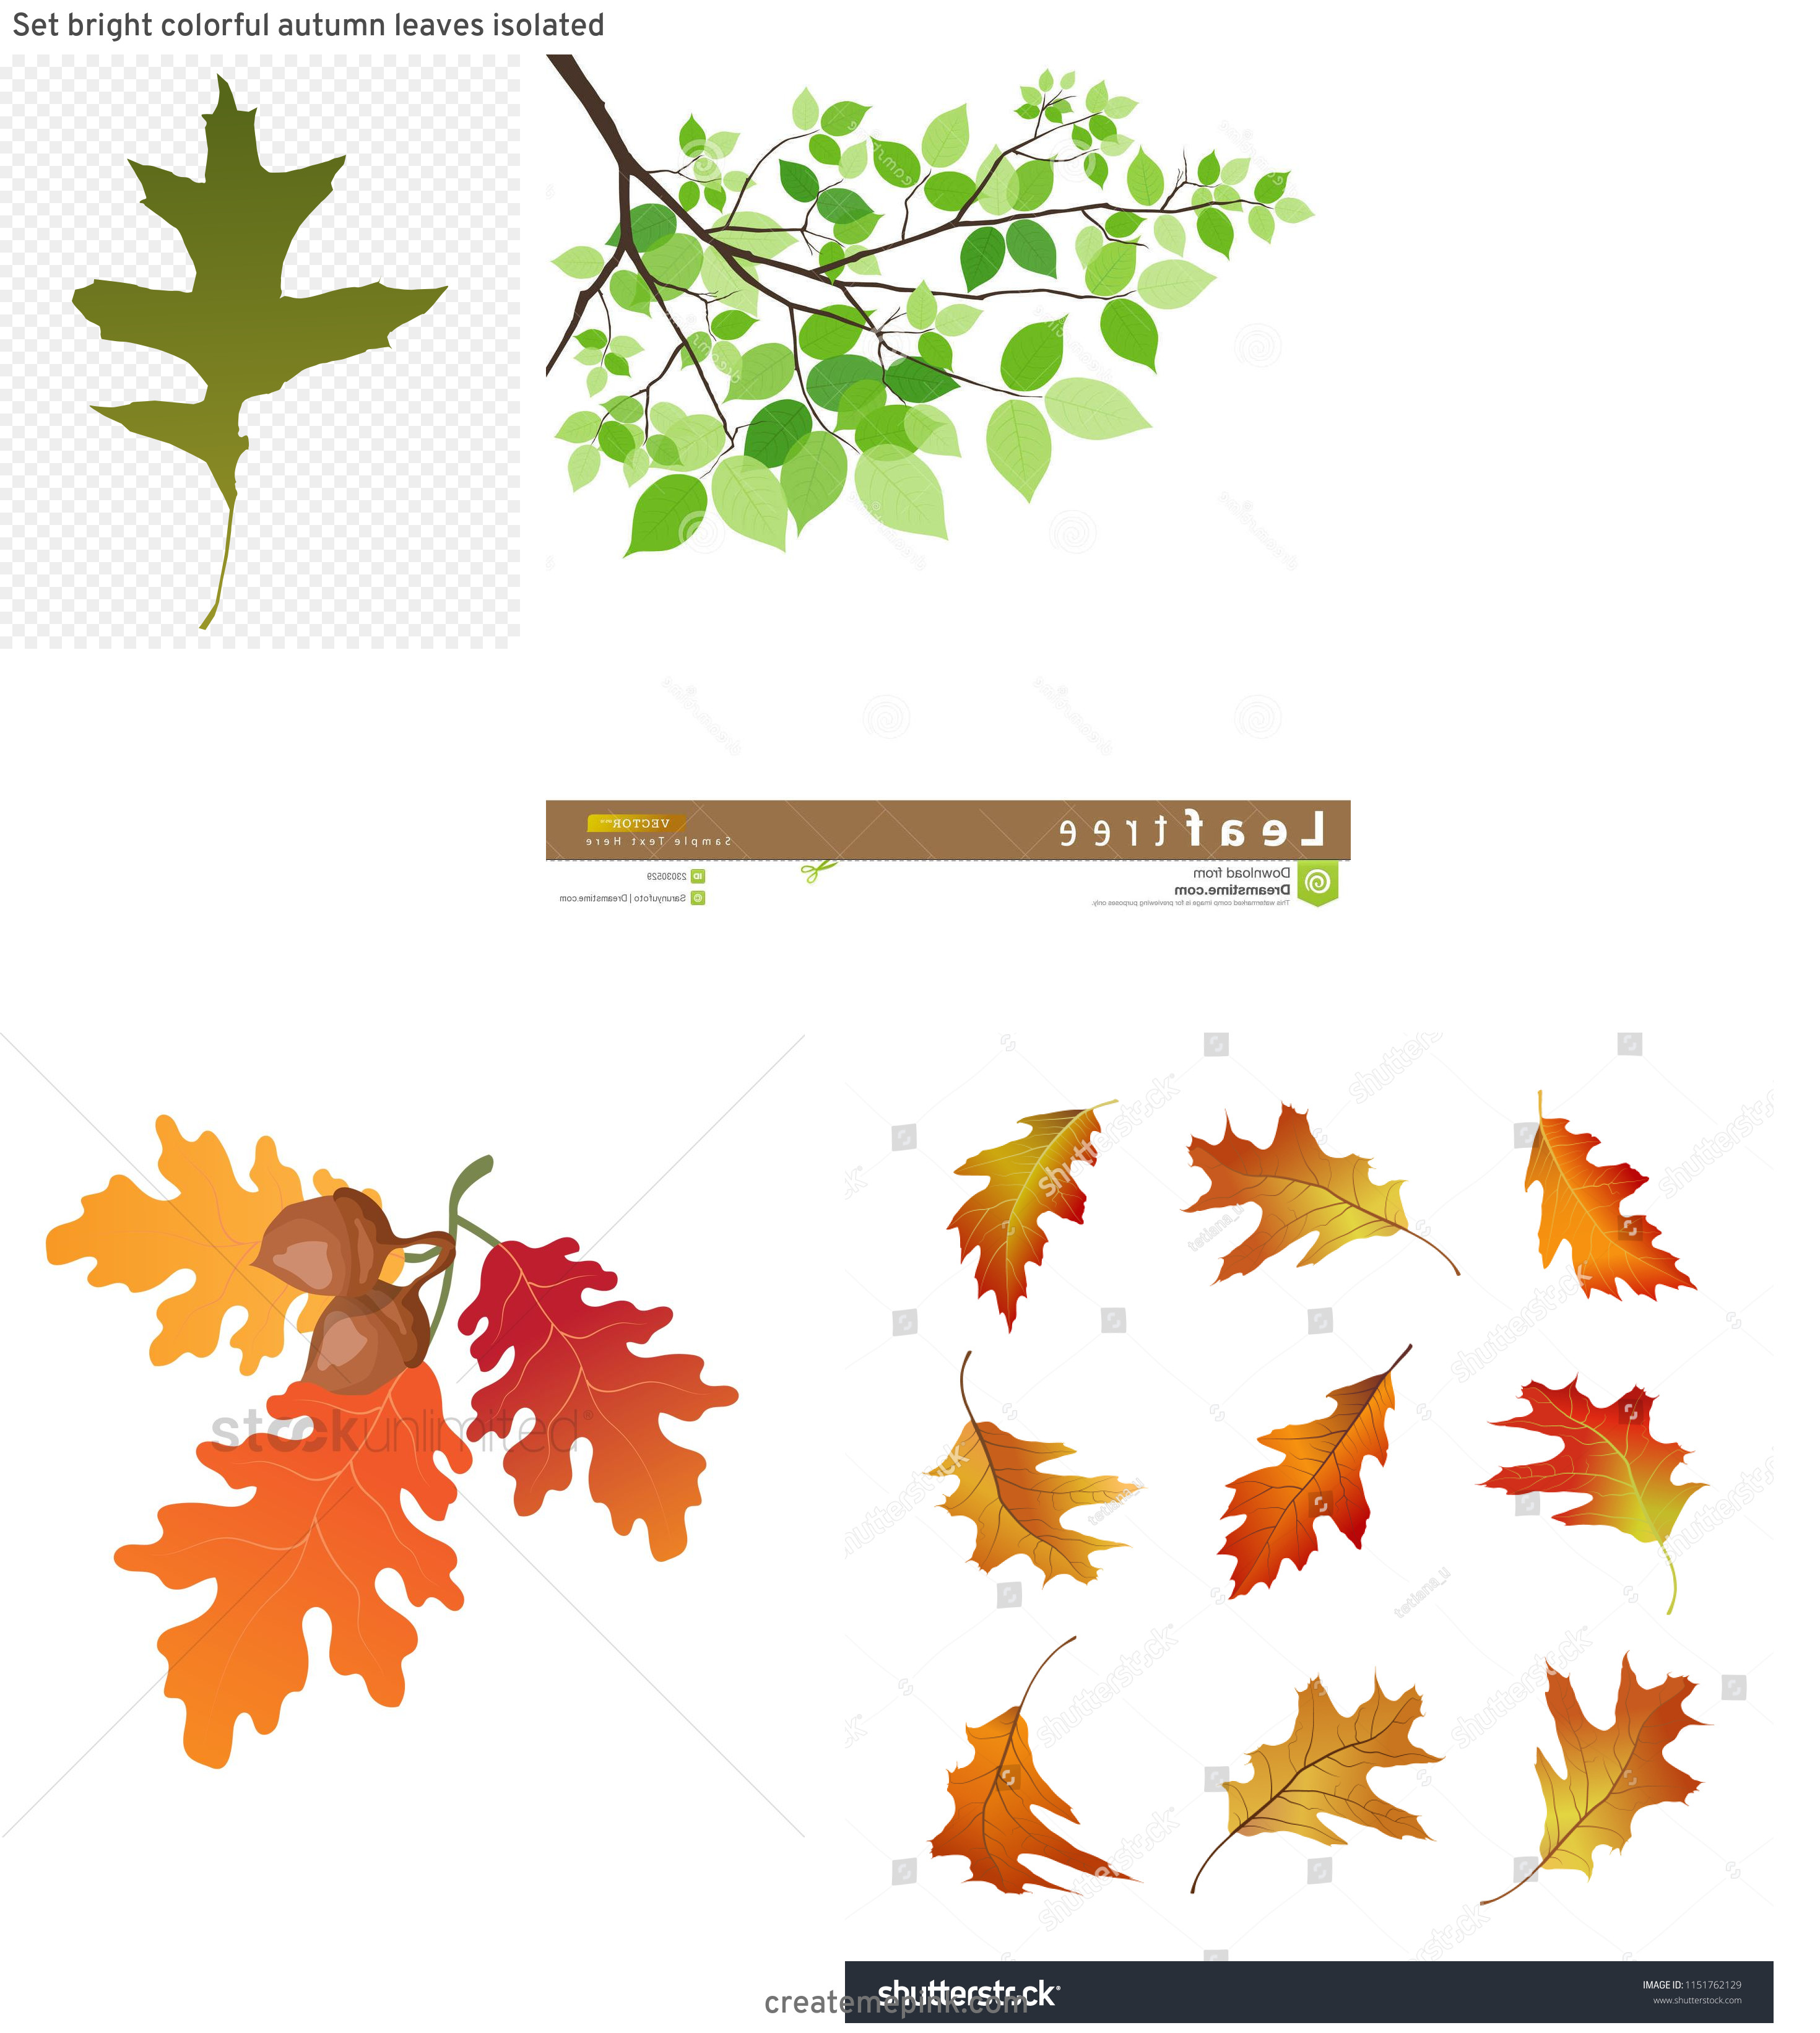 Falling Oak Leaves Vector: Set Bright Colorful Autumn Leaves Isolated